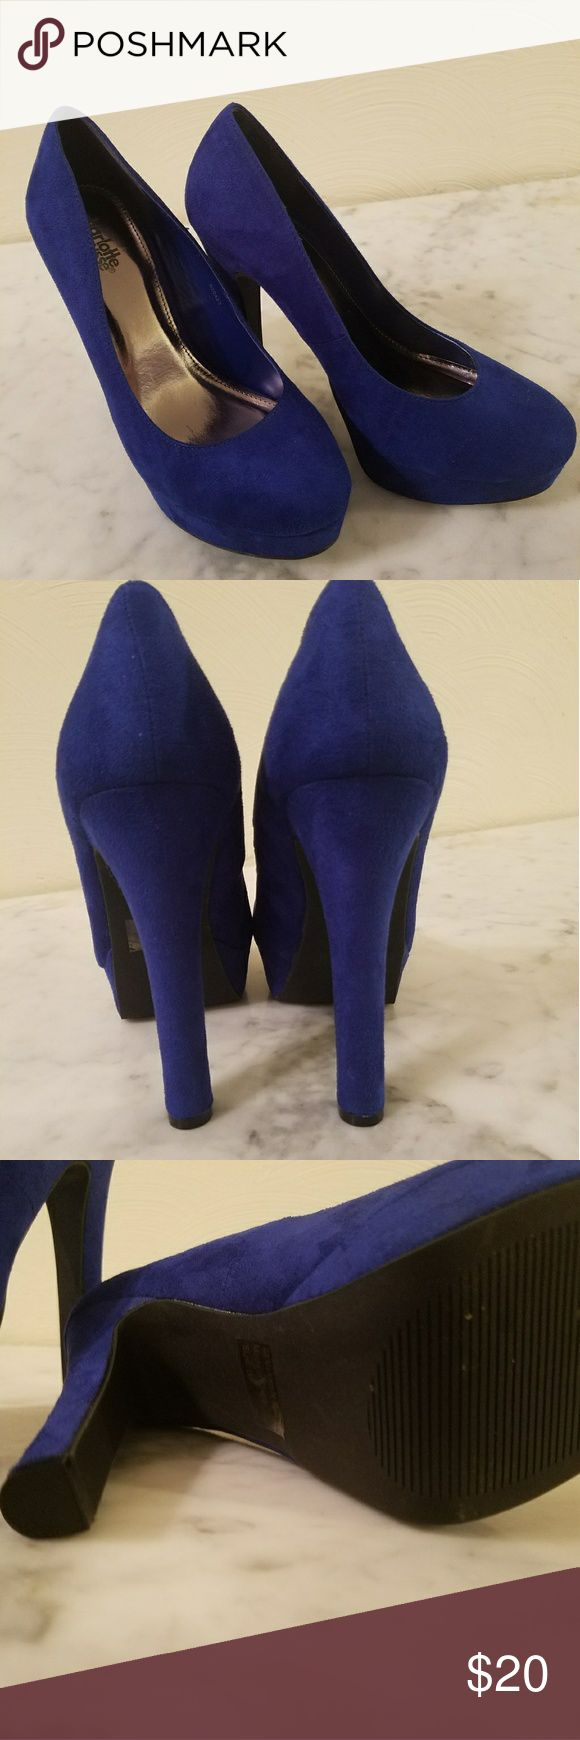 "Charlotte Russe Pumps Royal Blue like new condition 4"" heals. Suede fabric. Worn once for a dance, then stored. No flaws that I can find.   From a clean smoke free home Charlotte Russe Shoes Heels"